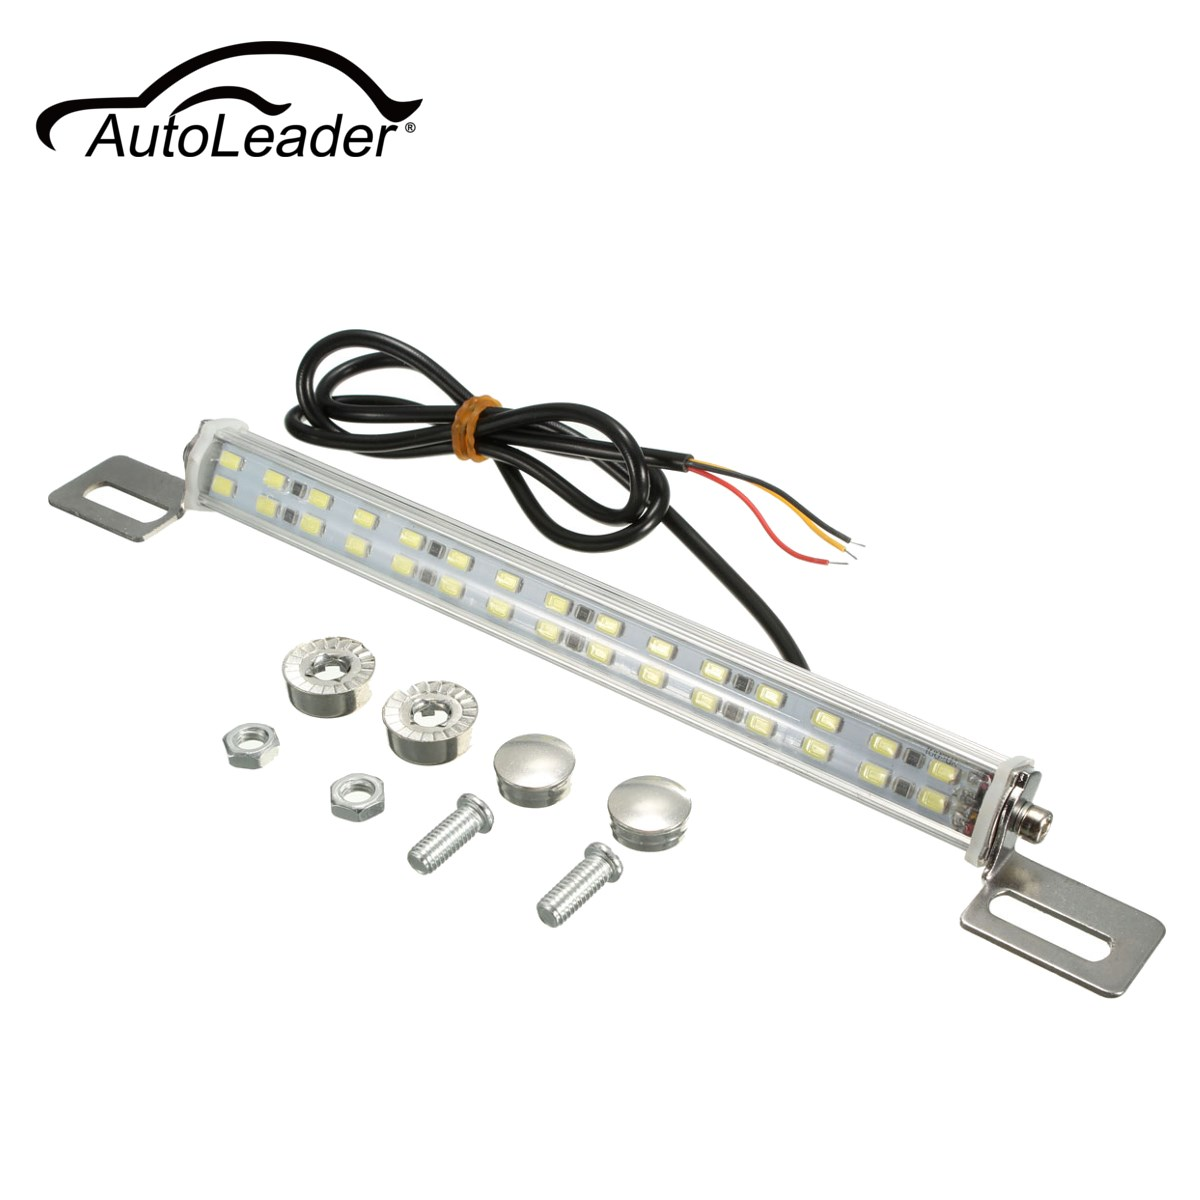 AutoLeader Universal 12V 30 LED Car Truck License Plate Backup Reverse Light Number Plate Lamp White Car Styling adidas performance adidas performance ad094emhez52